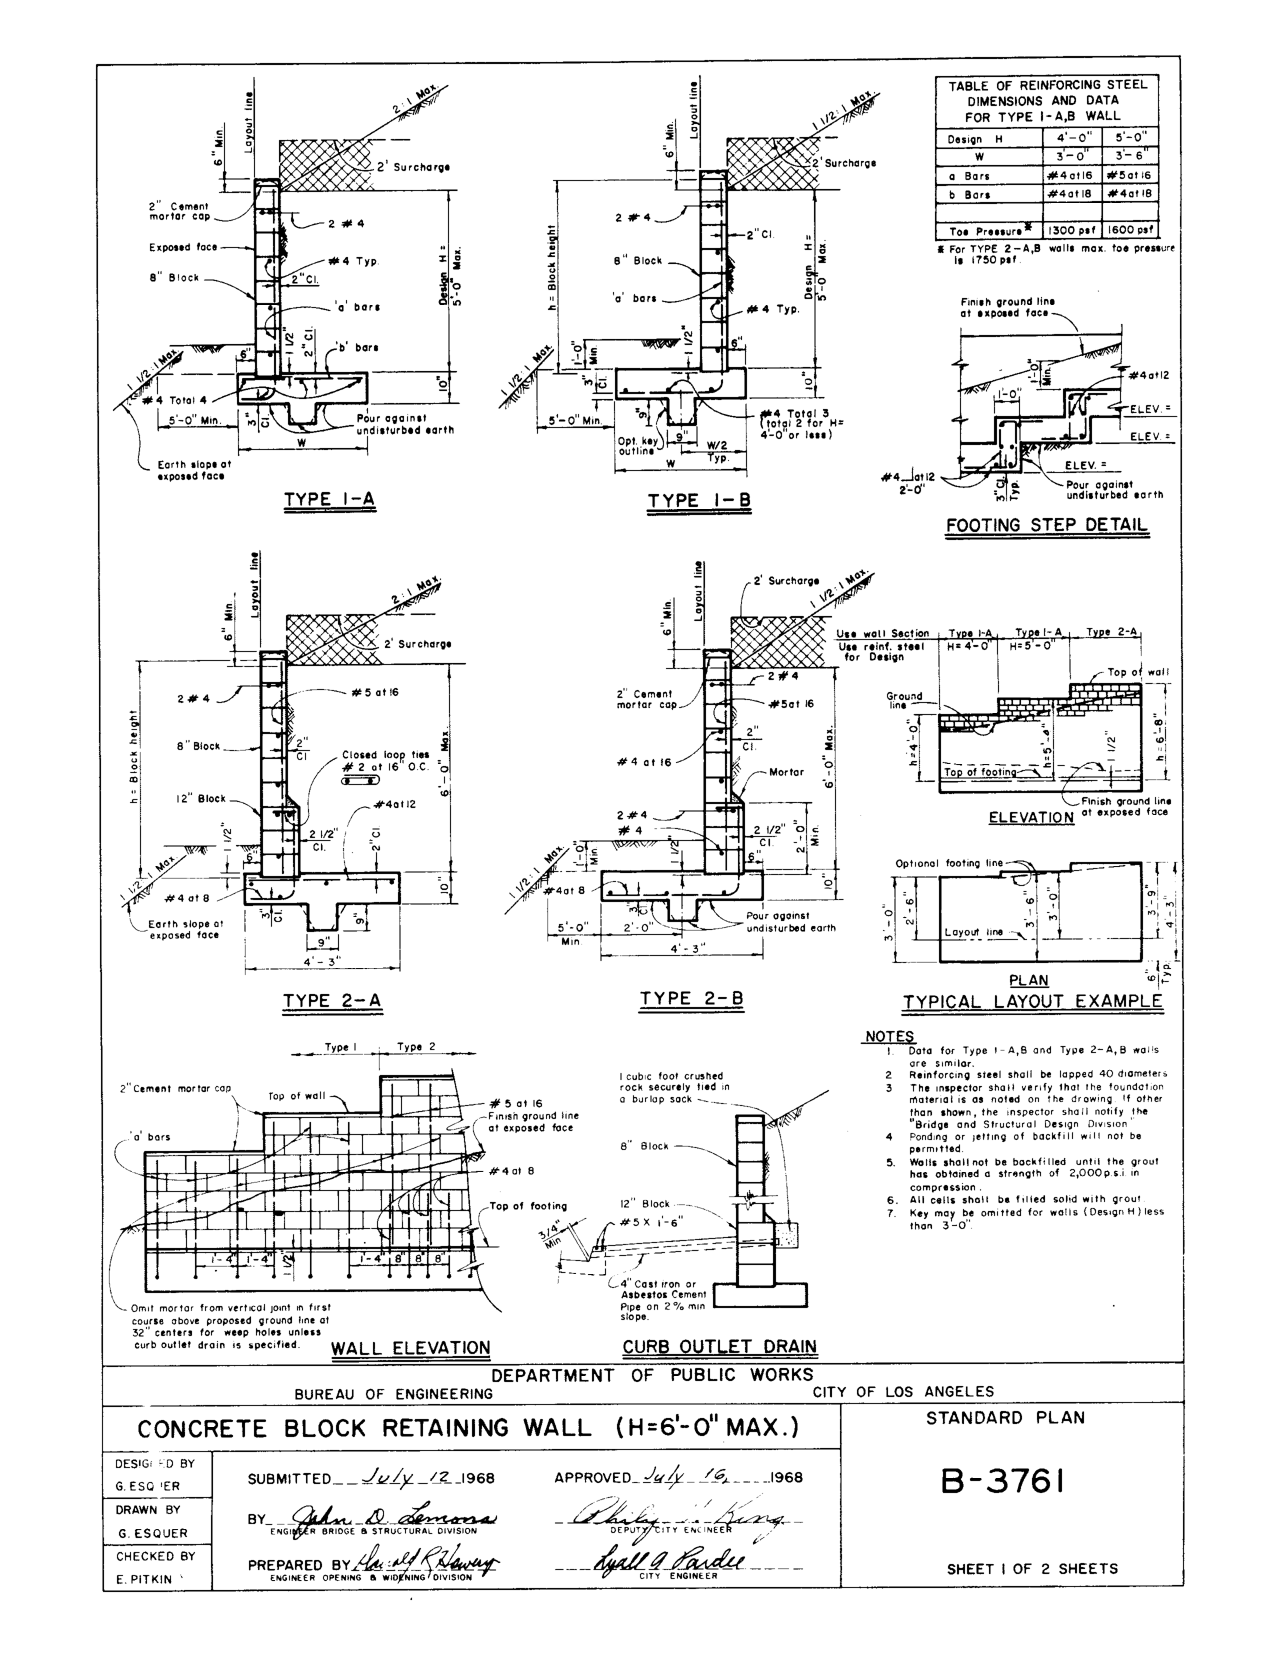 medium resolution of concrete block retaining wall detail architecture building a new home new home construction weblog www thejonathanalonso com newhomeconstruction